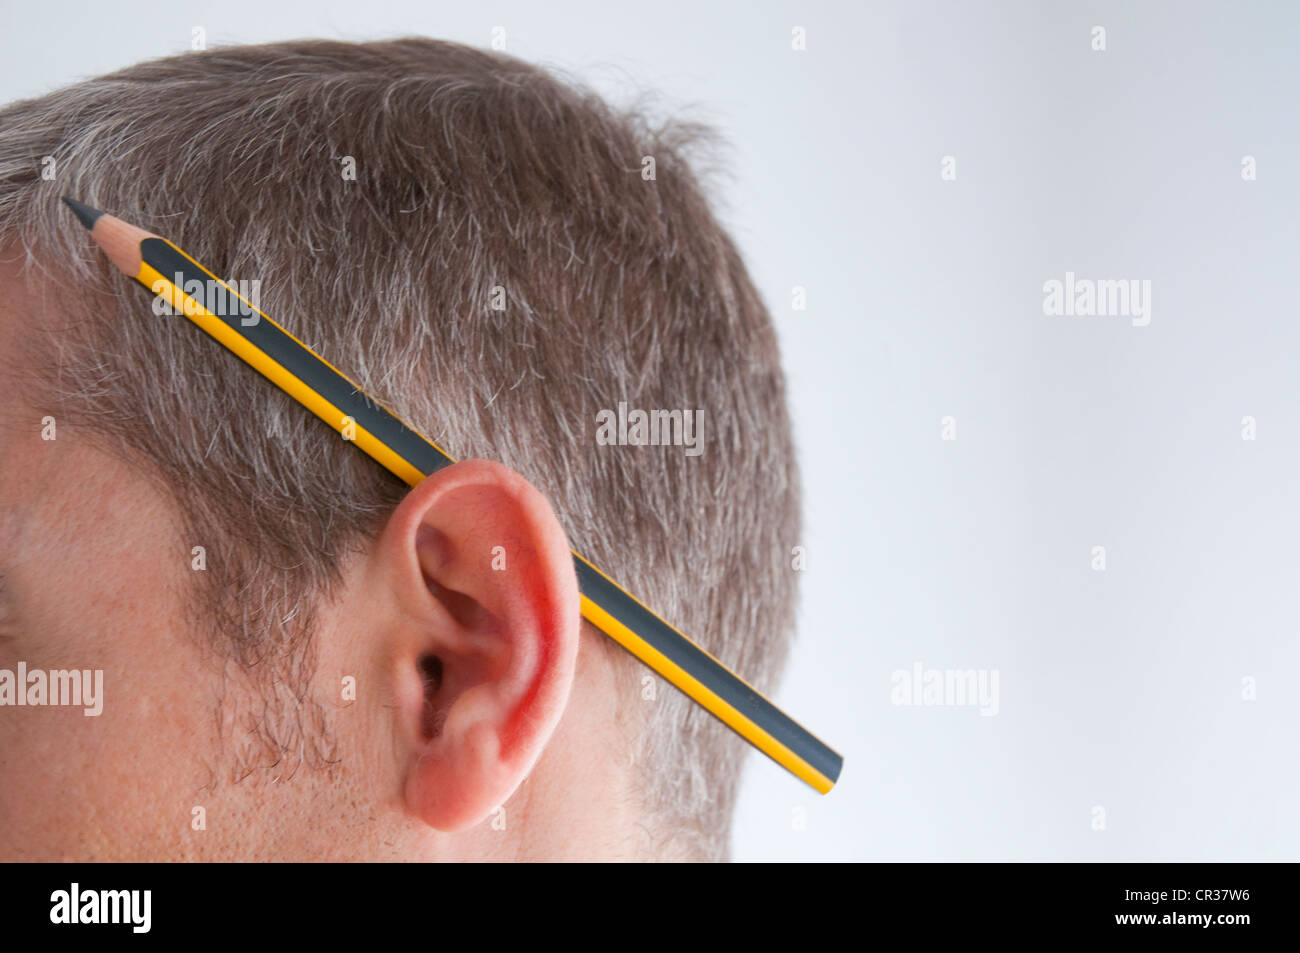 Man with pencil behind his ear. Close view. - Stock Image